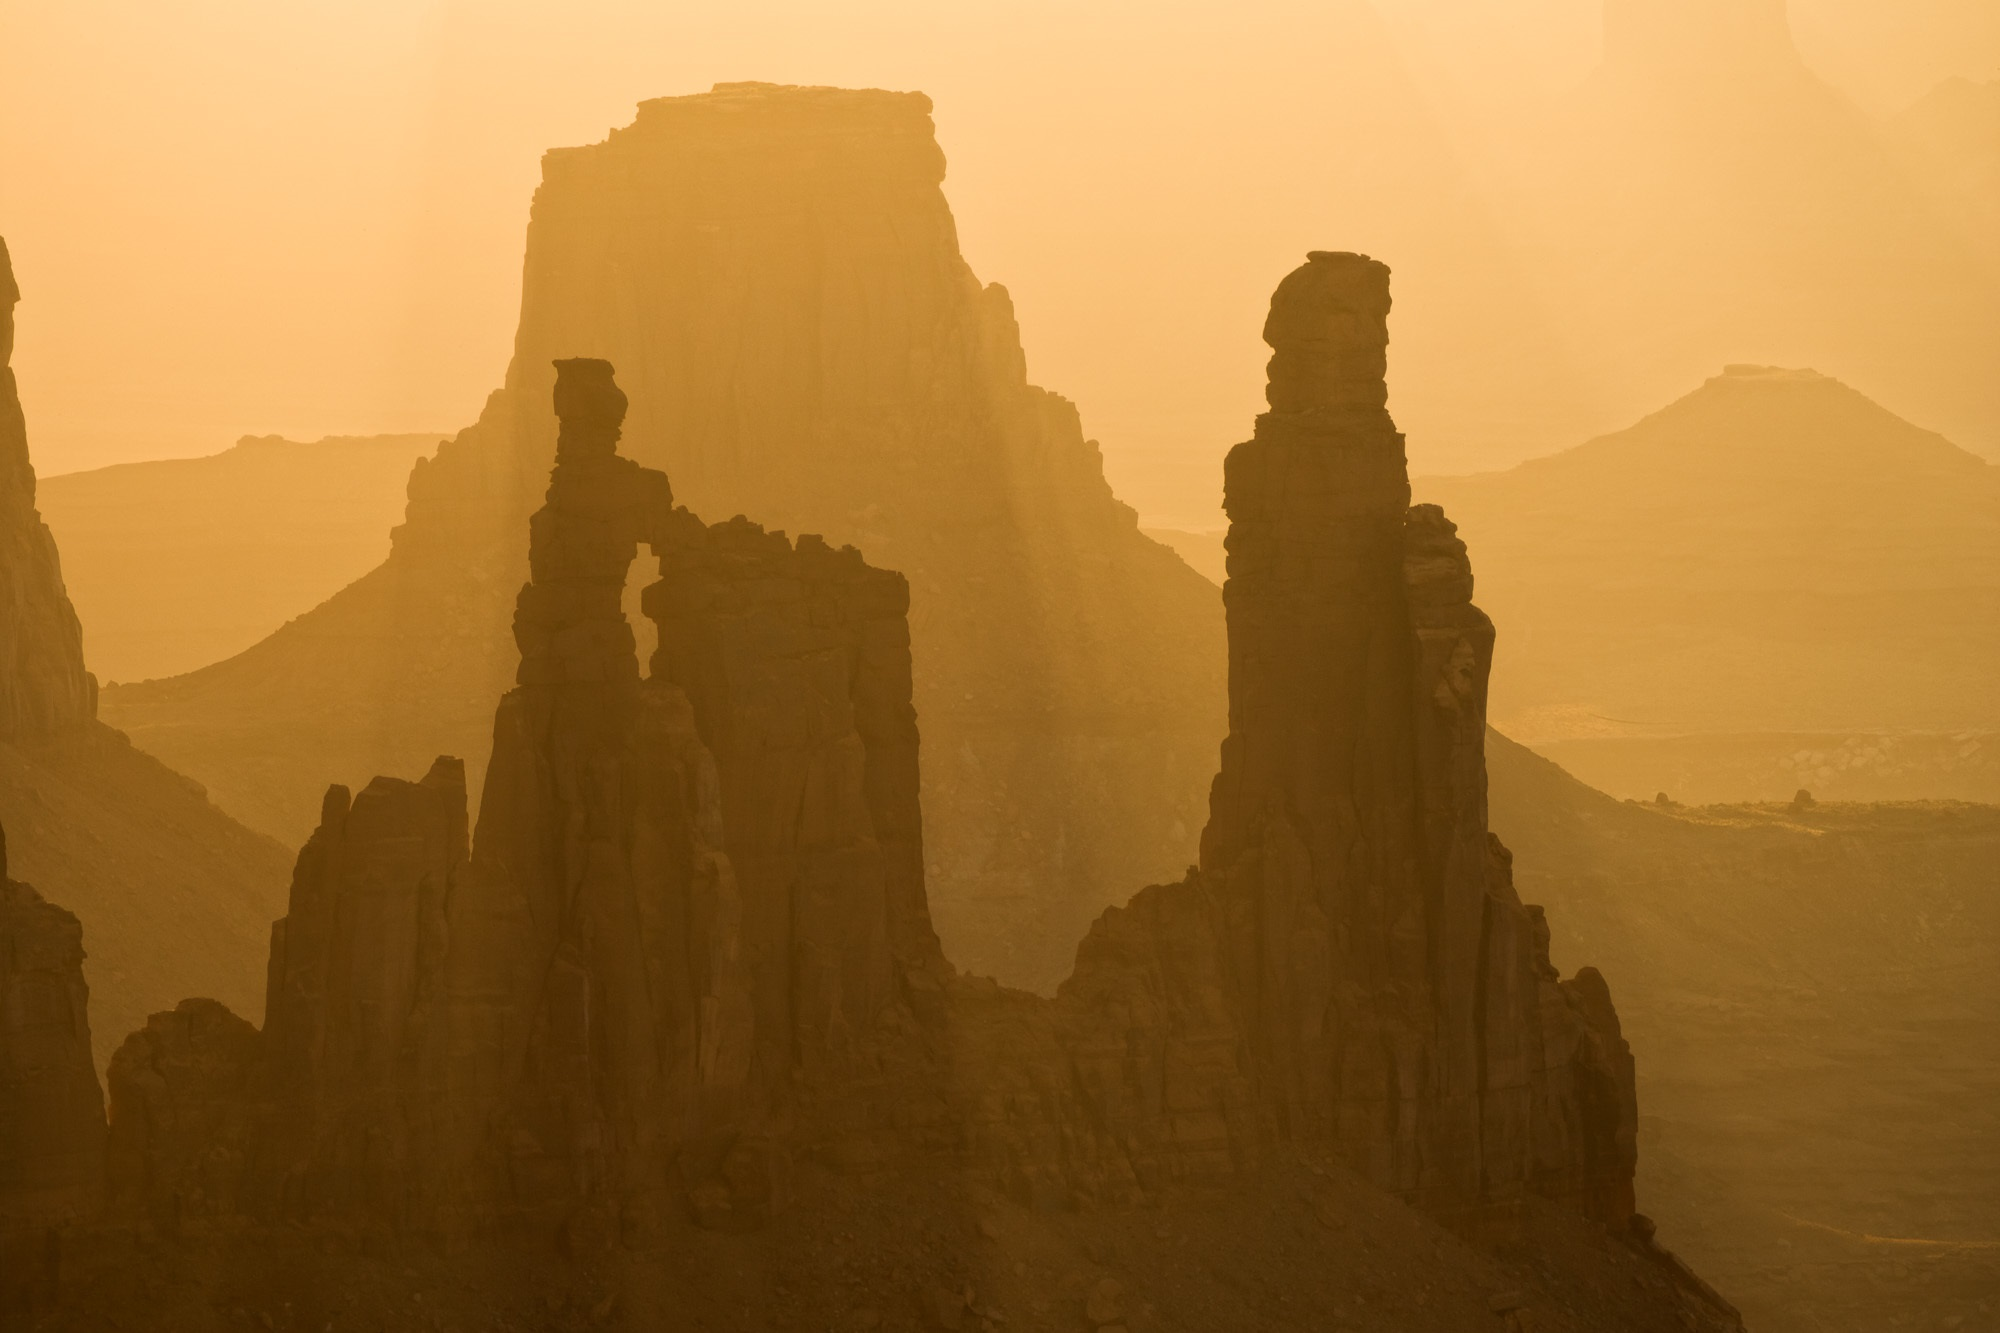 Washer Woman Arch and Monster Tower at Sunrise, Canyonlands National Park, Utah